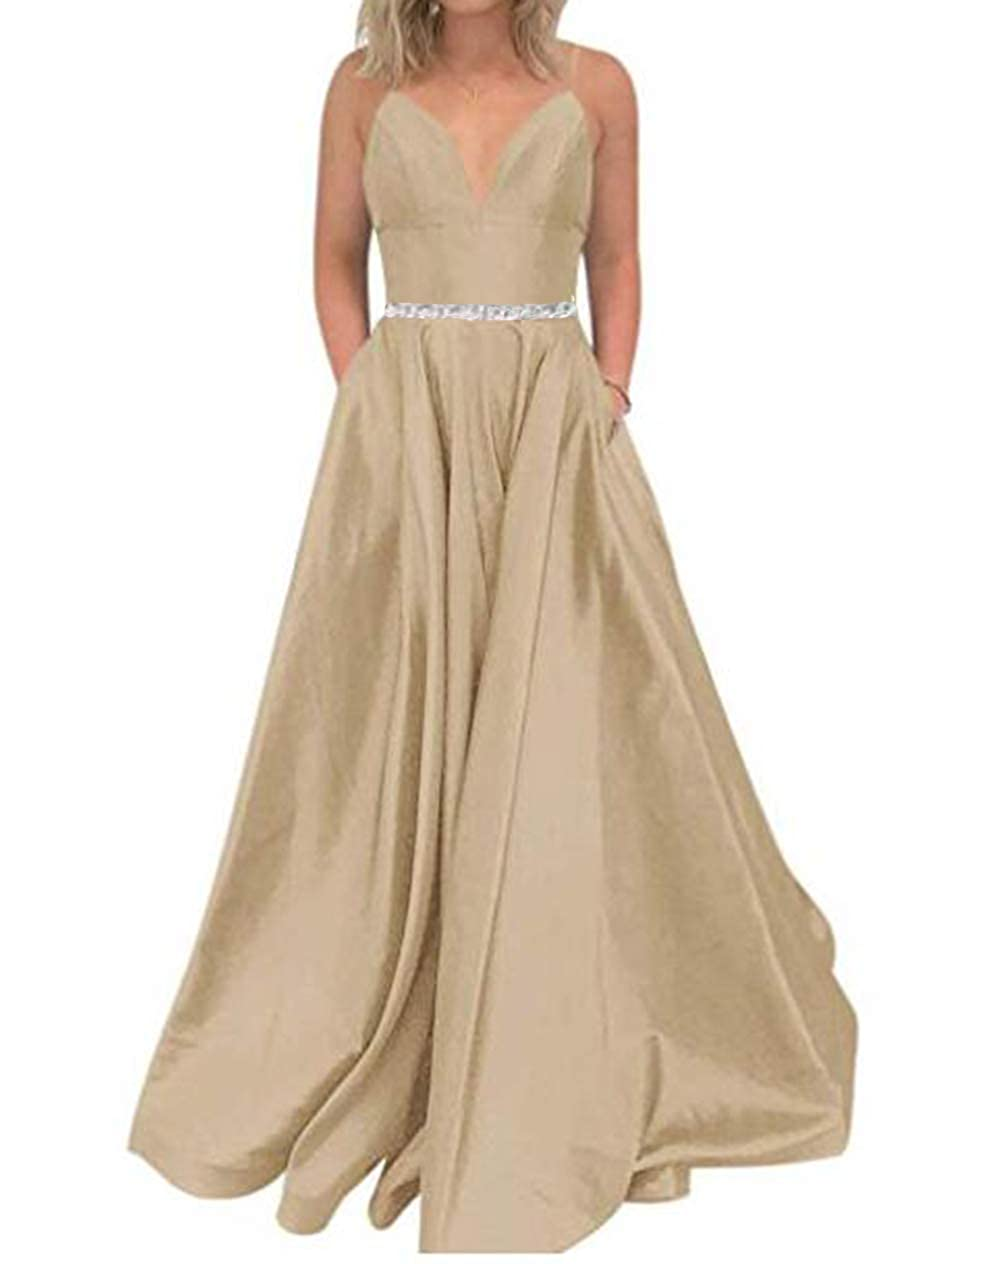 Champagne Tsbridal Women's A Line Bead Prom Dresses V Neck Satin with Pockets Evening Gown